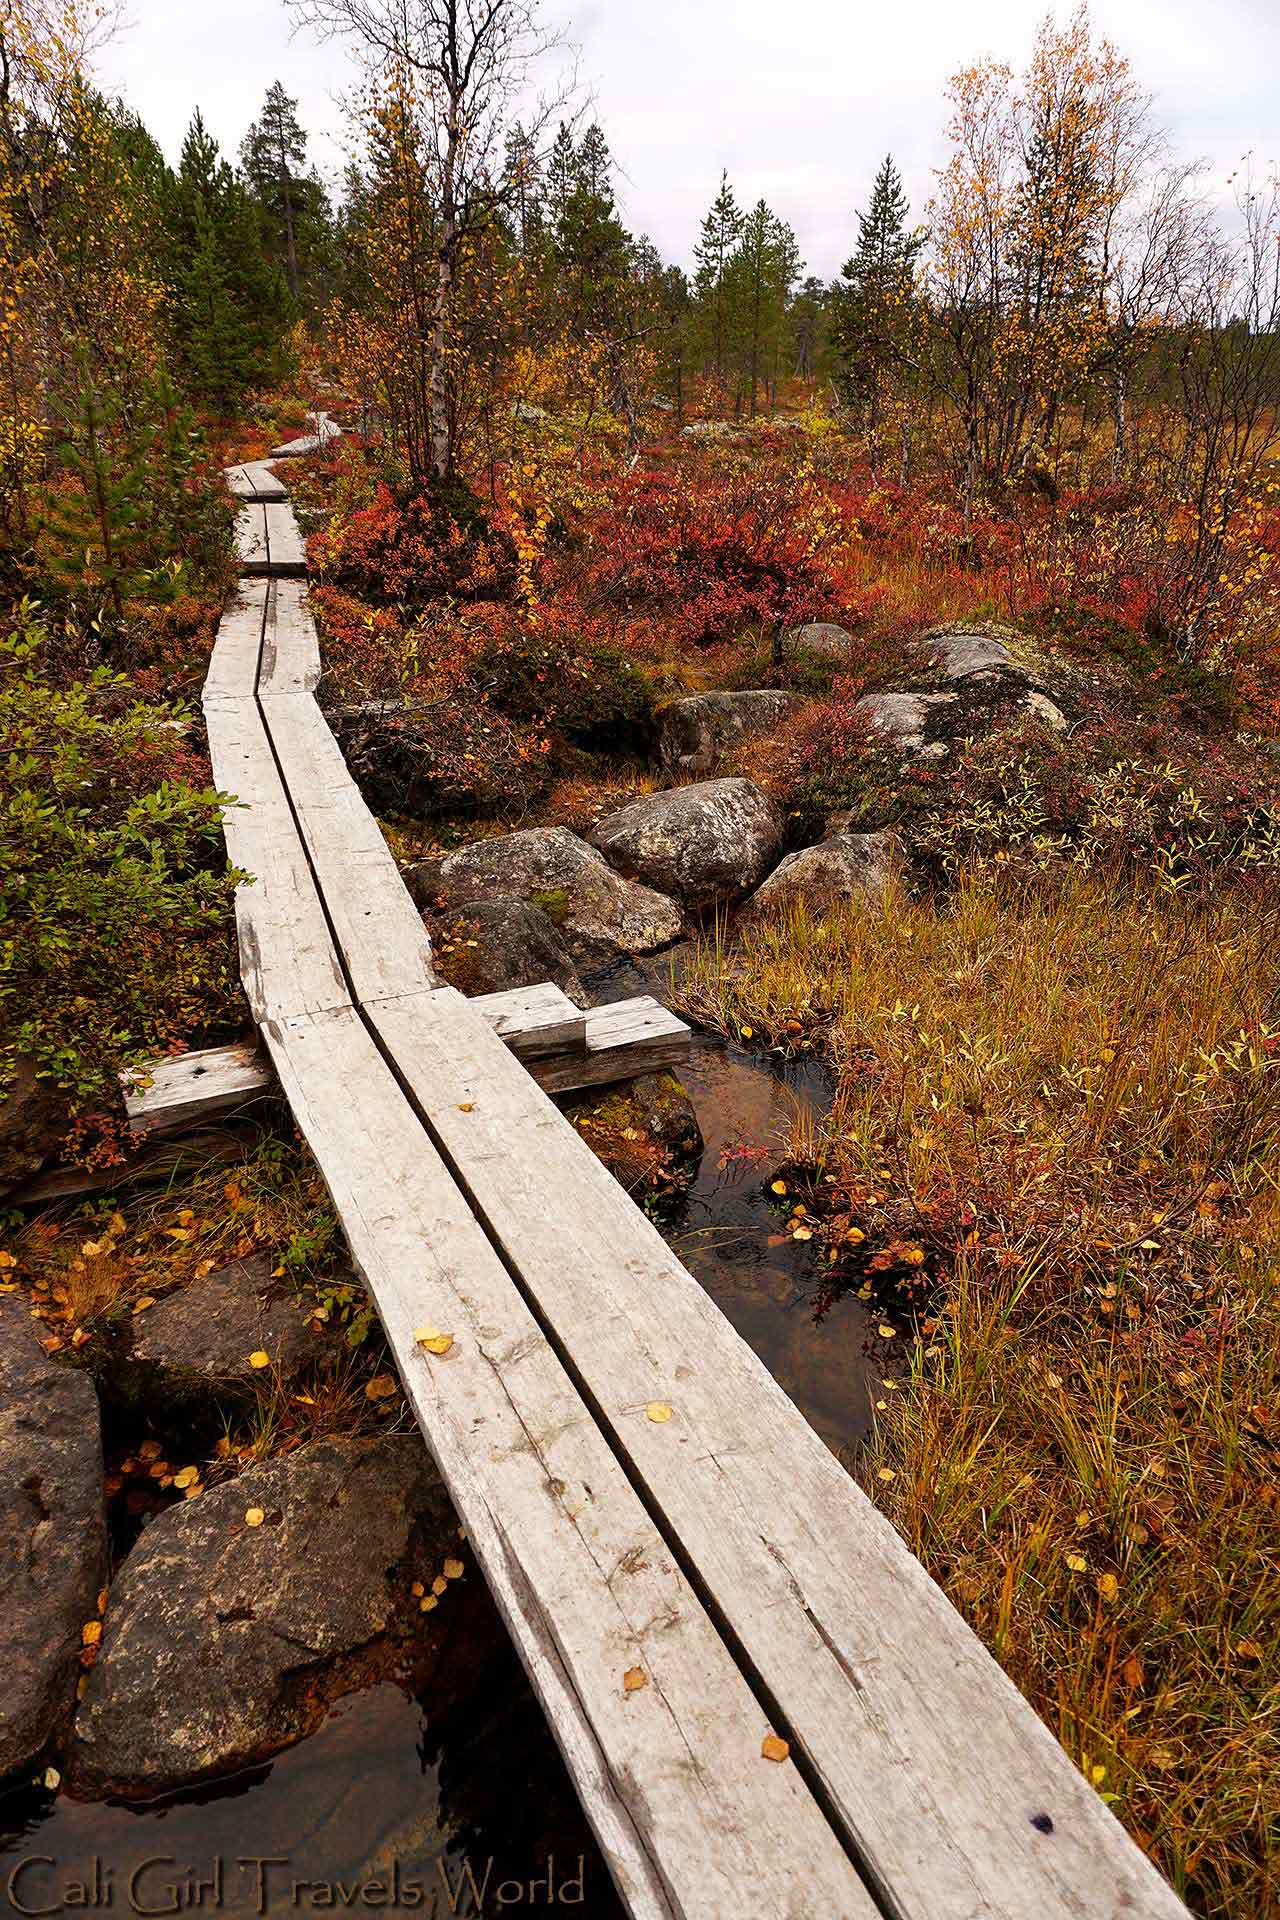 A pathway through the Finnish wilderness above puddles surrounded by ruska colors.